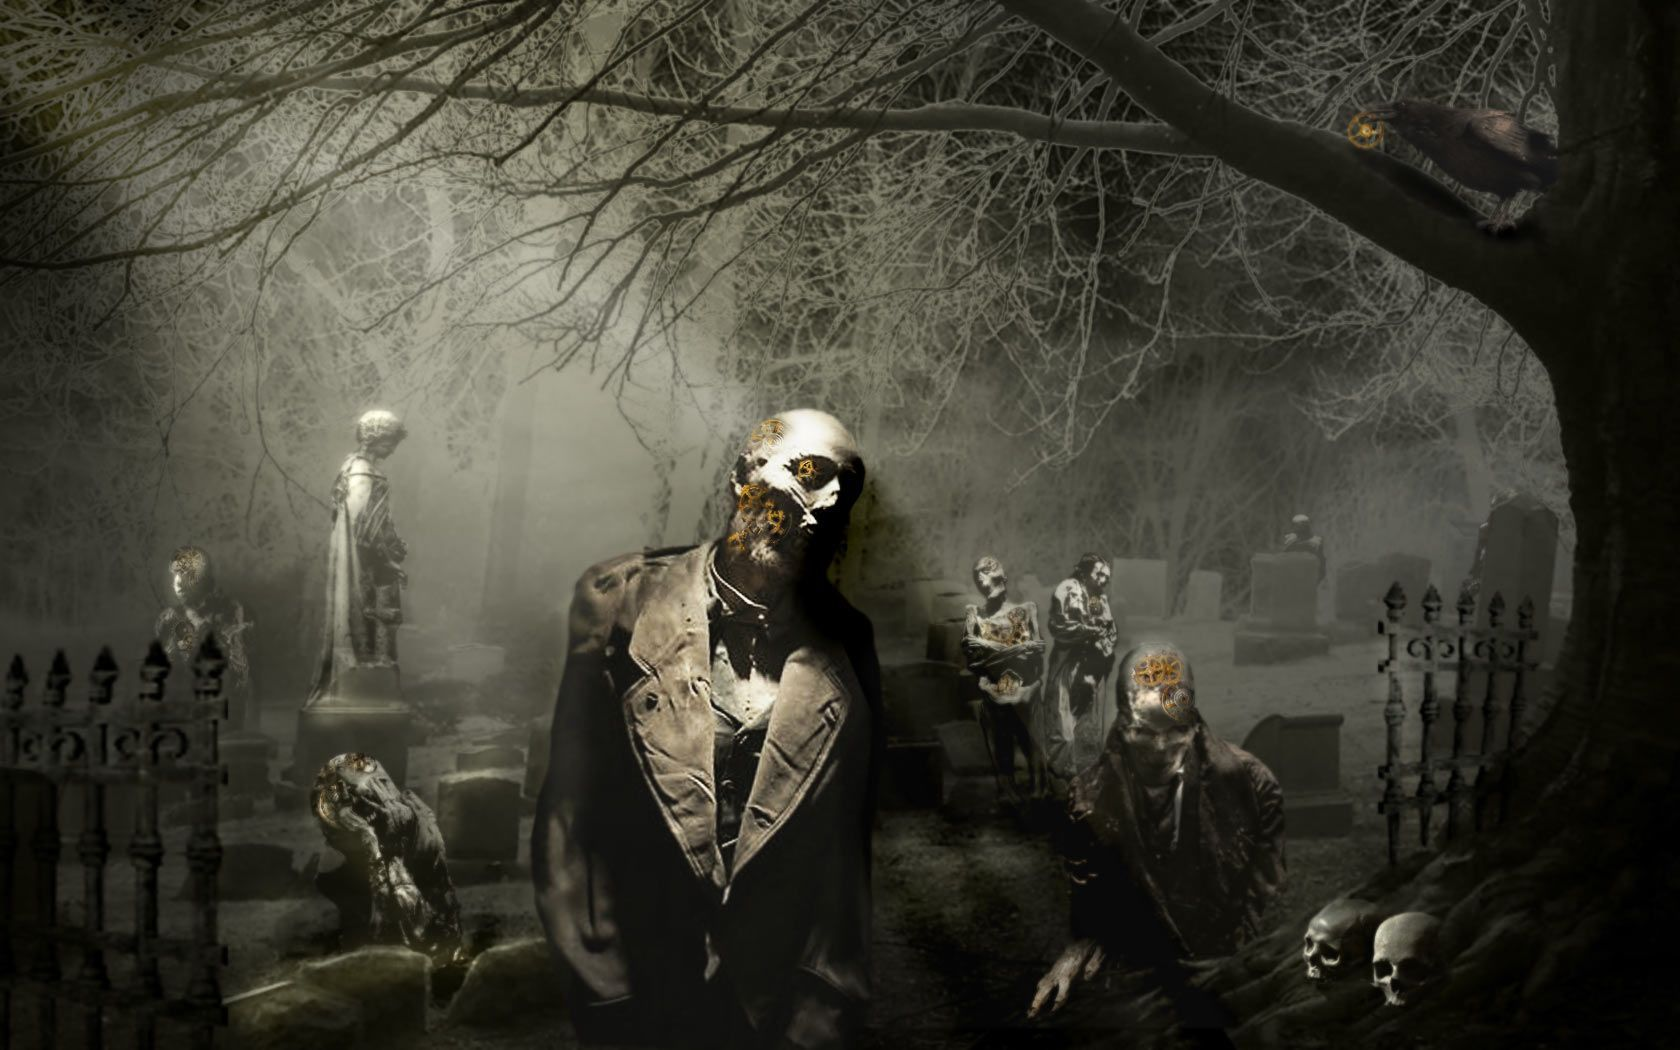 Halloween Zombie Wallpaper Zombie Wallpaper Zombie Background Zombie